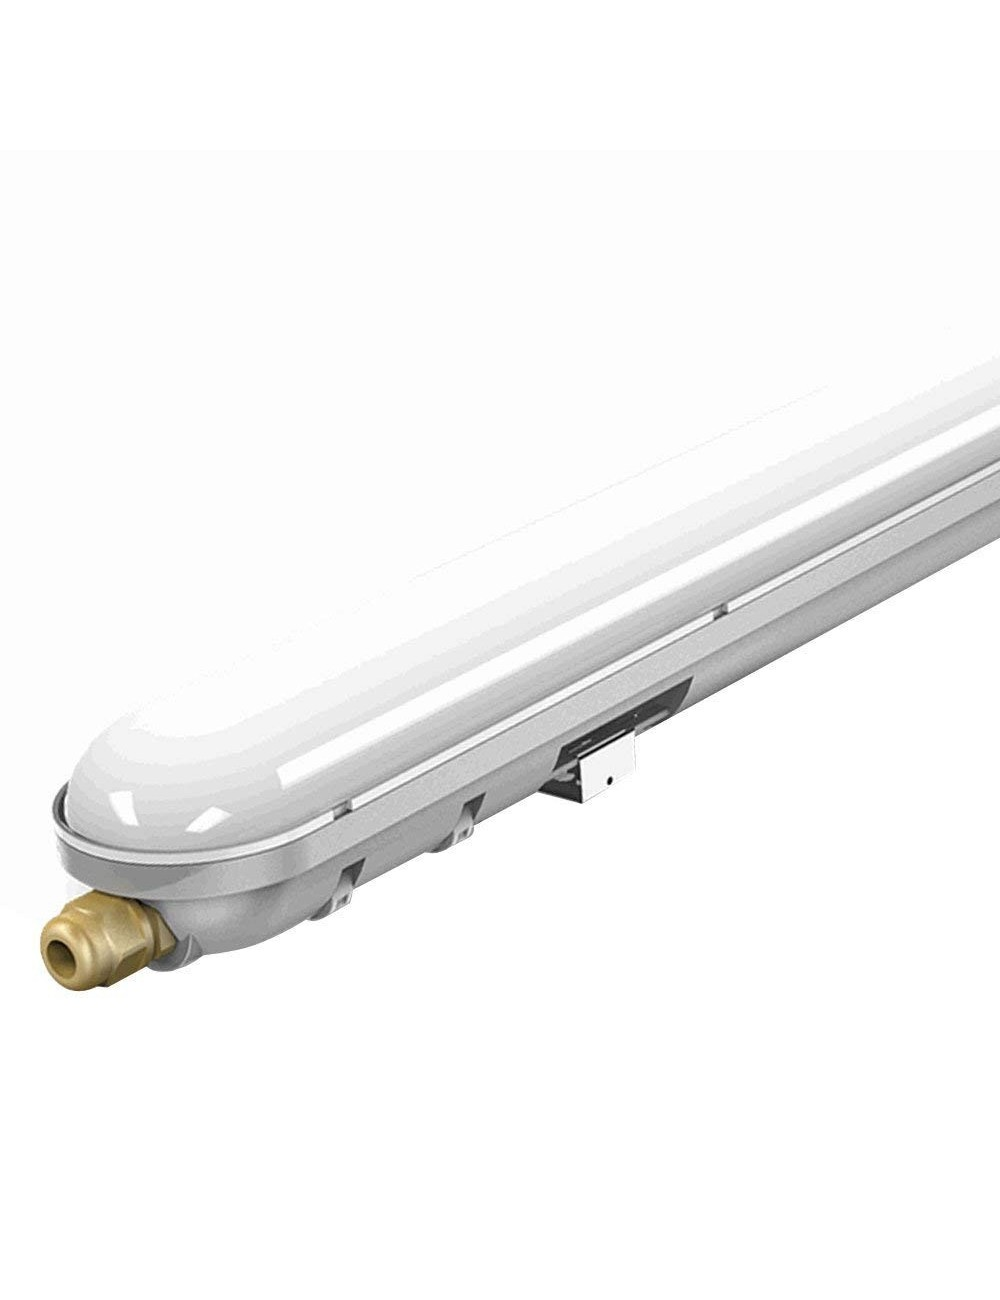 Tubo led plafoniera 36w 120cm ip65 con kit di emergenza v for Tubi luminosi led